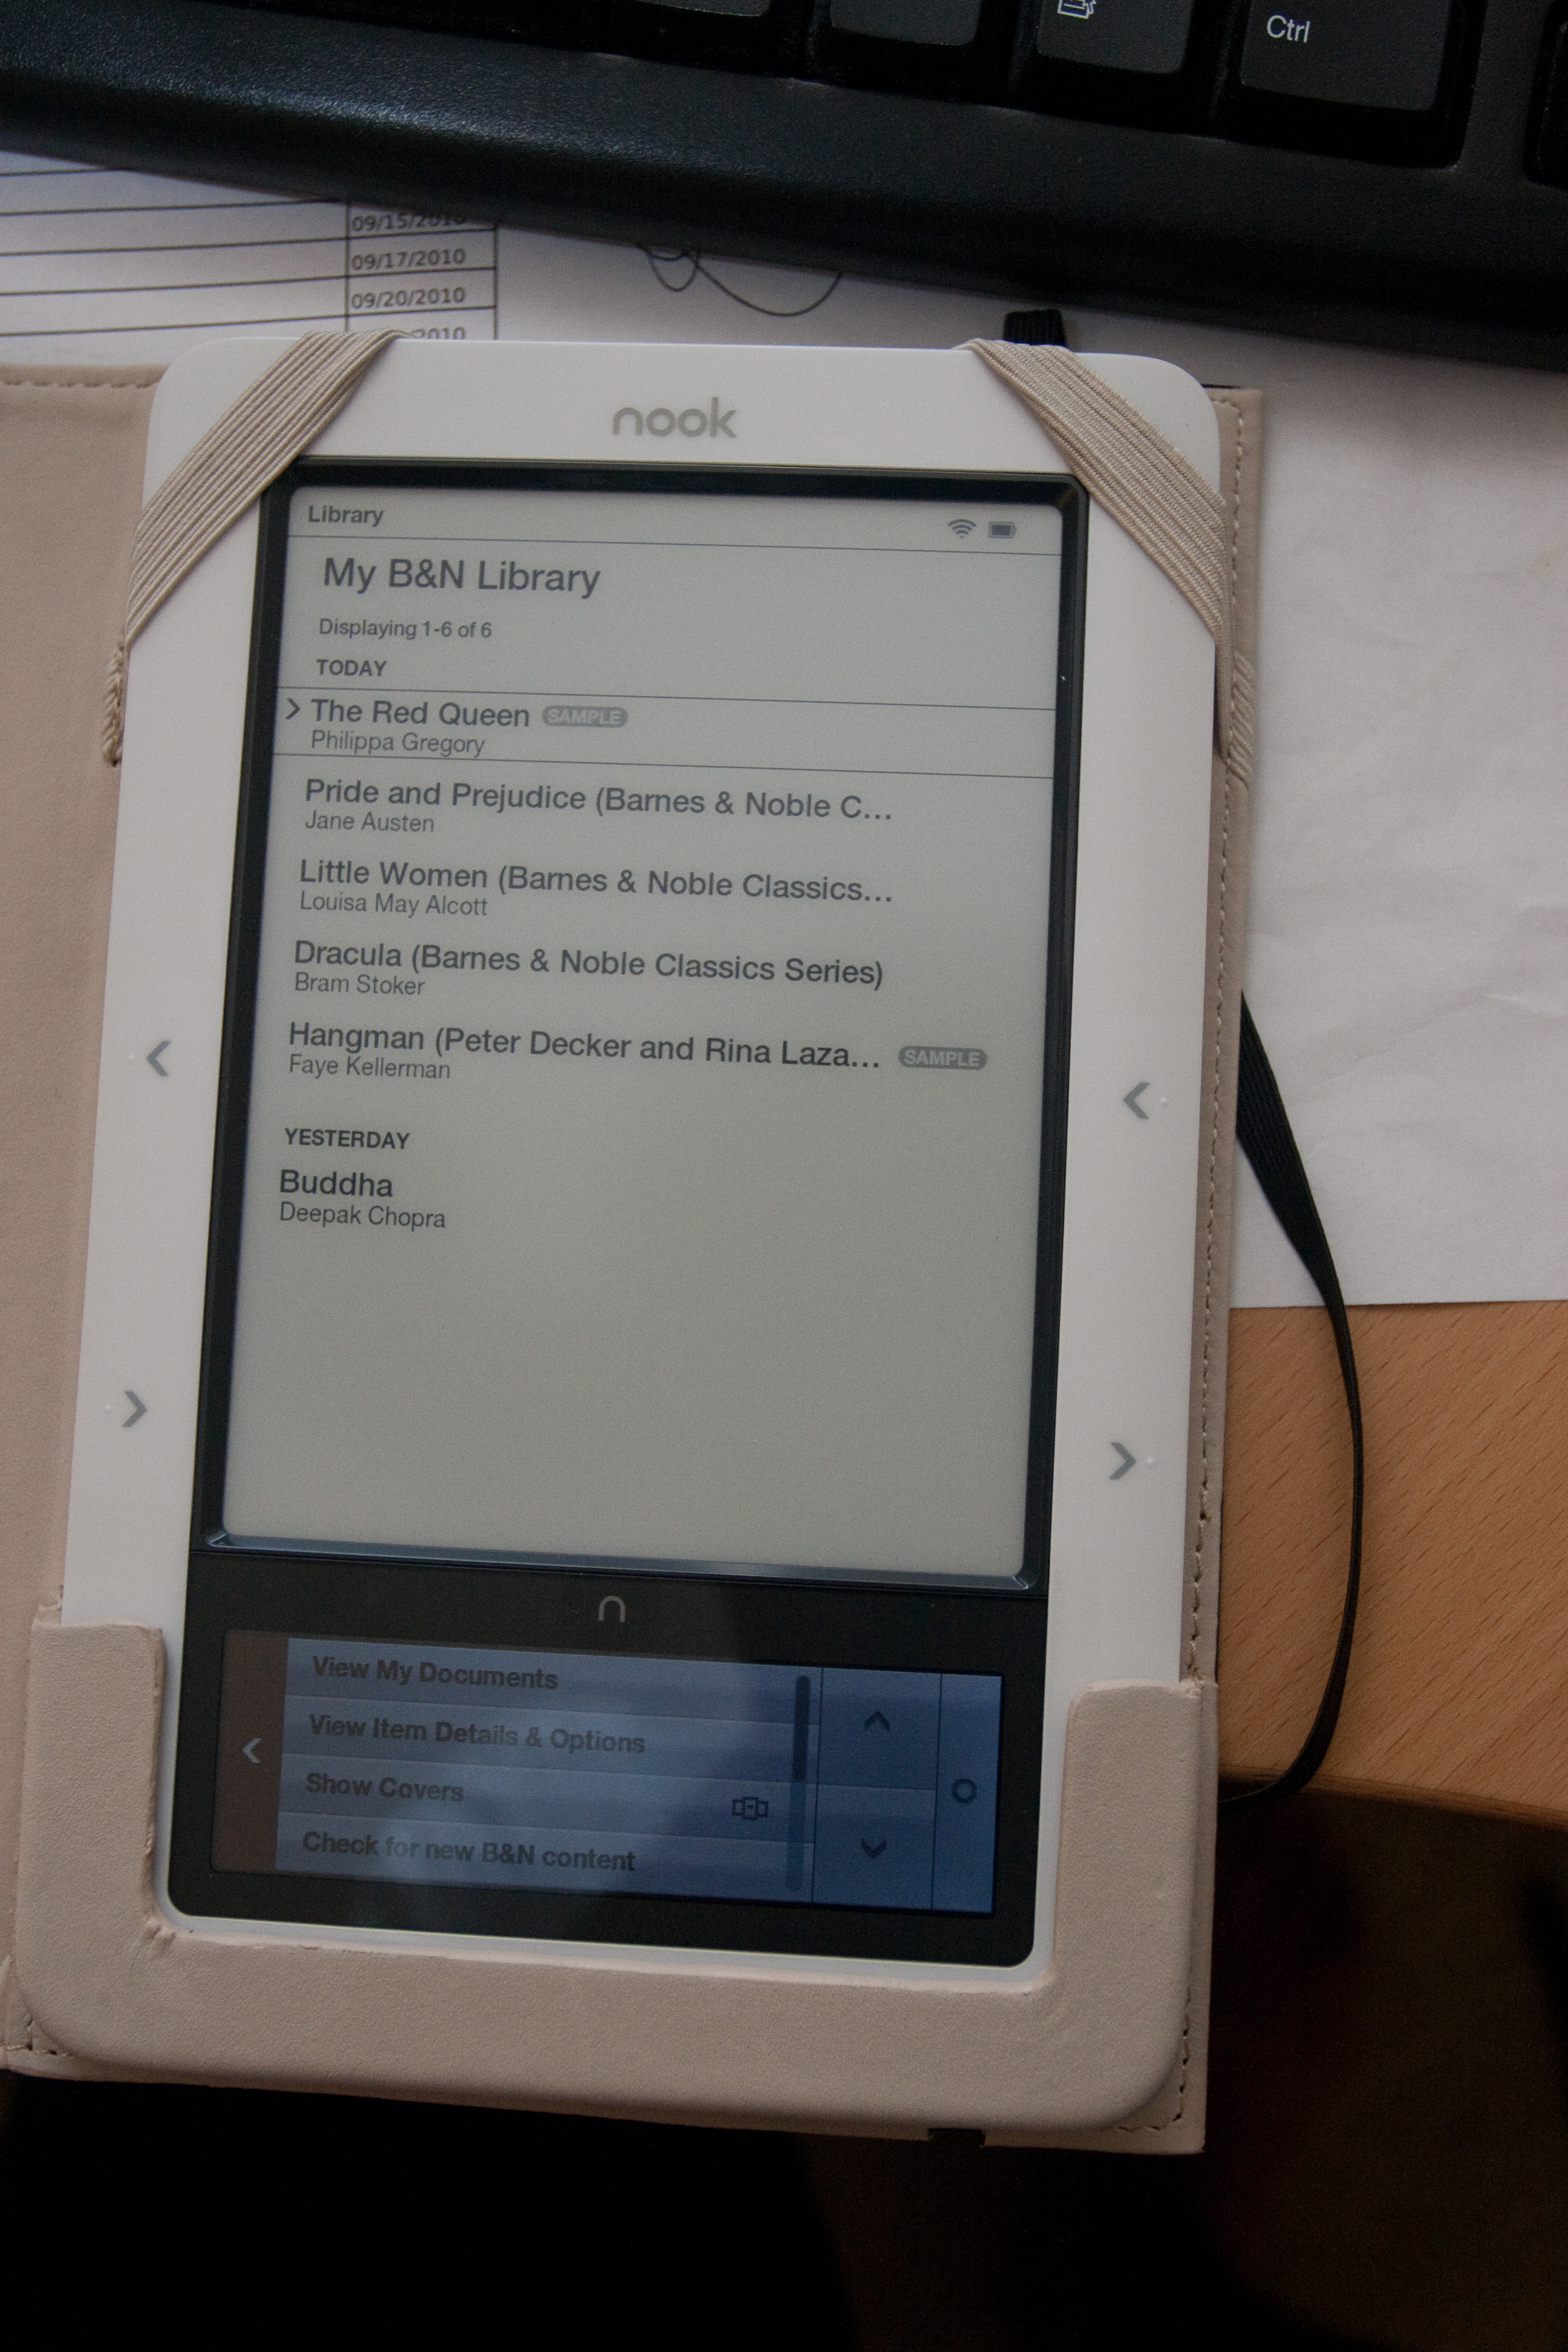 The list of books loaded into my Barnes and Noble Nook